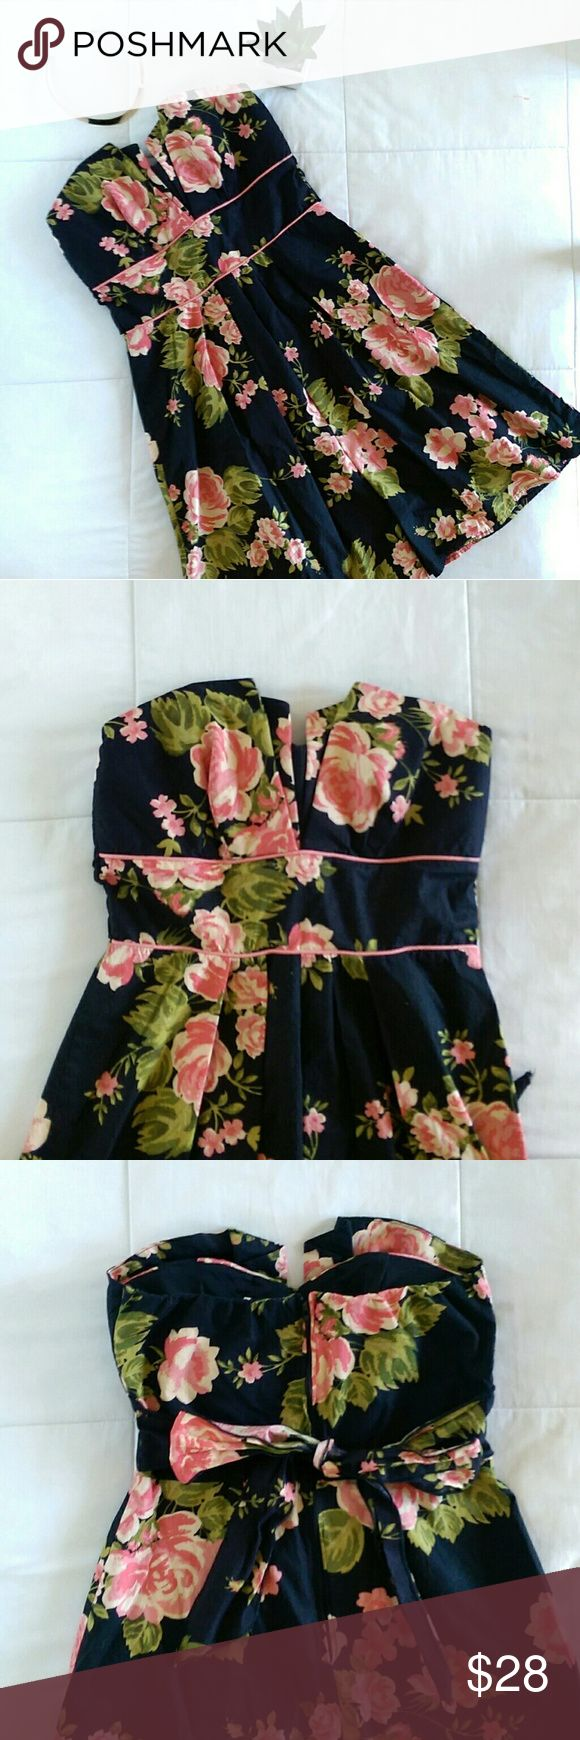 Garden Floral Strapless Summer Dress Perfect garden party dress this summer. Flirty rose pattern, back tie and structured V shaped bodice makes this dress so cute. Padded on inside. Has pink piping in front of dress around waist. Says size 8 but fits like a small. Bust measures 14'. Waist is 26'. Length is 28'.   Excellent condition. Open to offers. No trades. B Smart Dresses Strapless